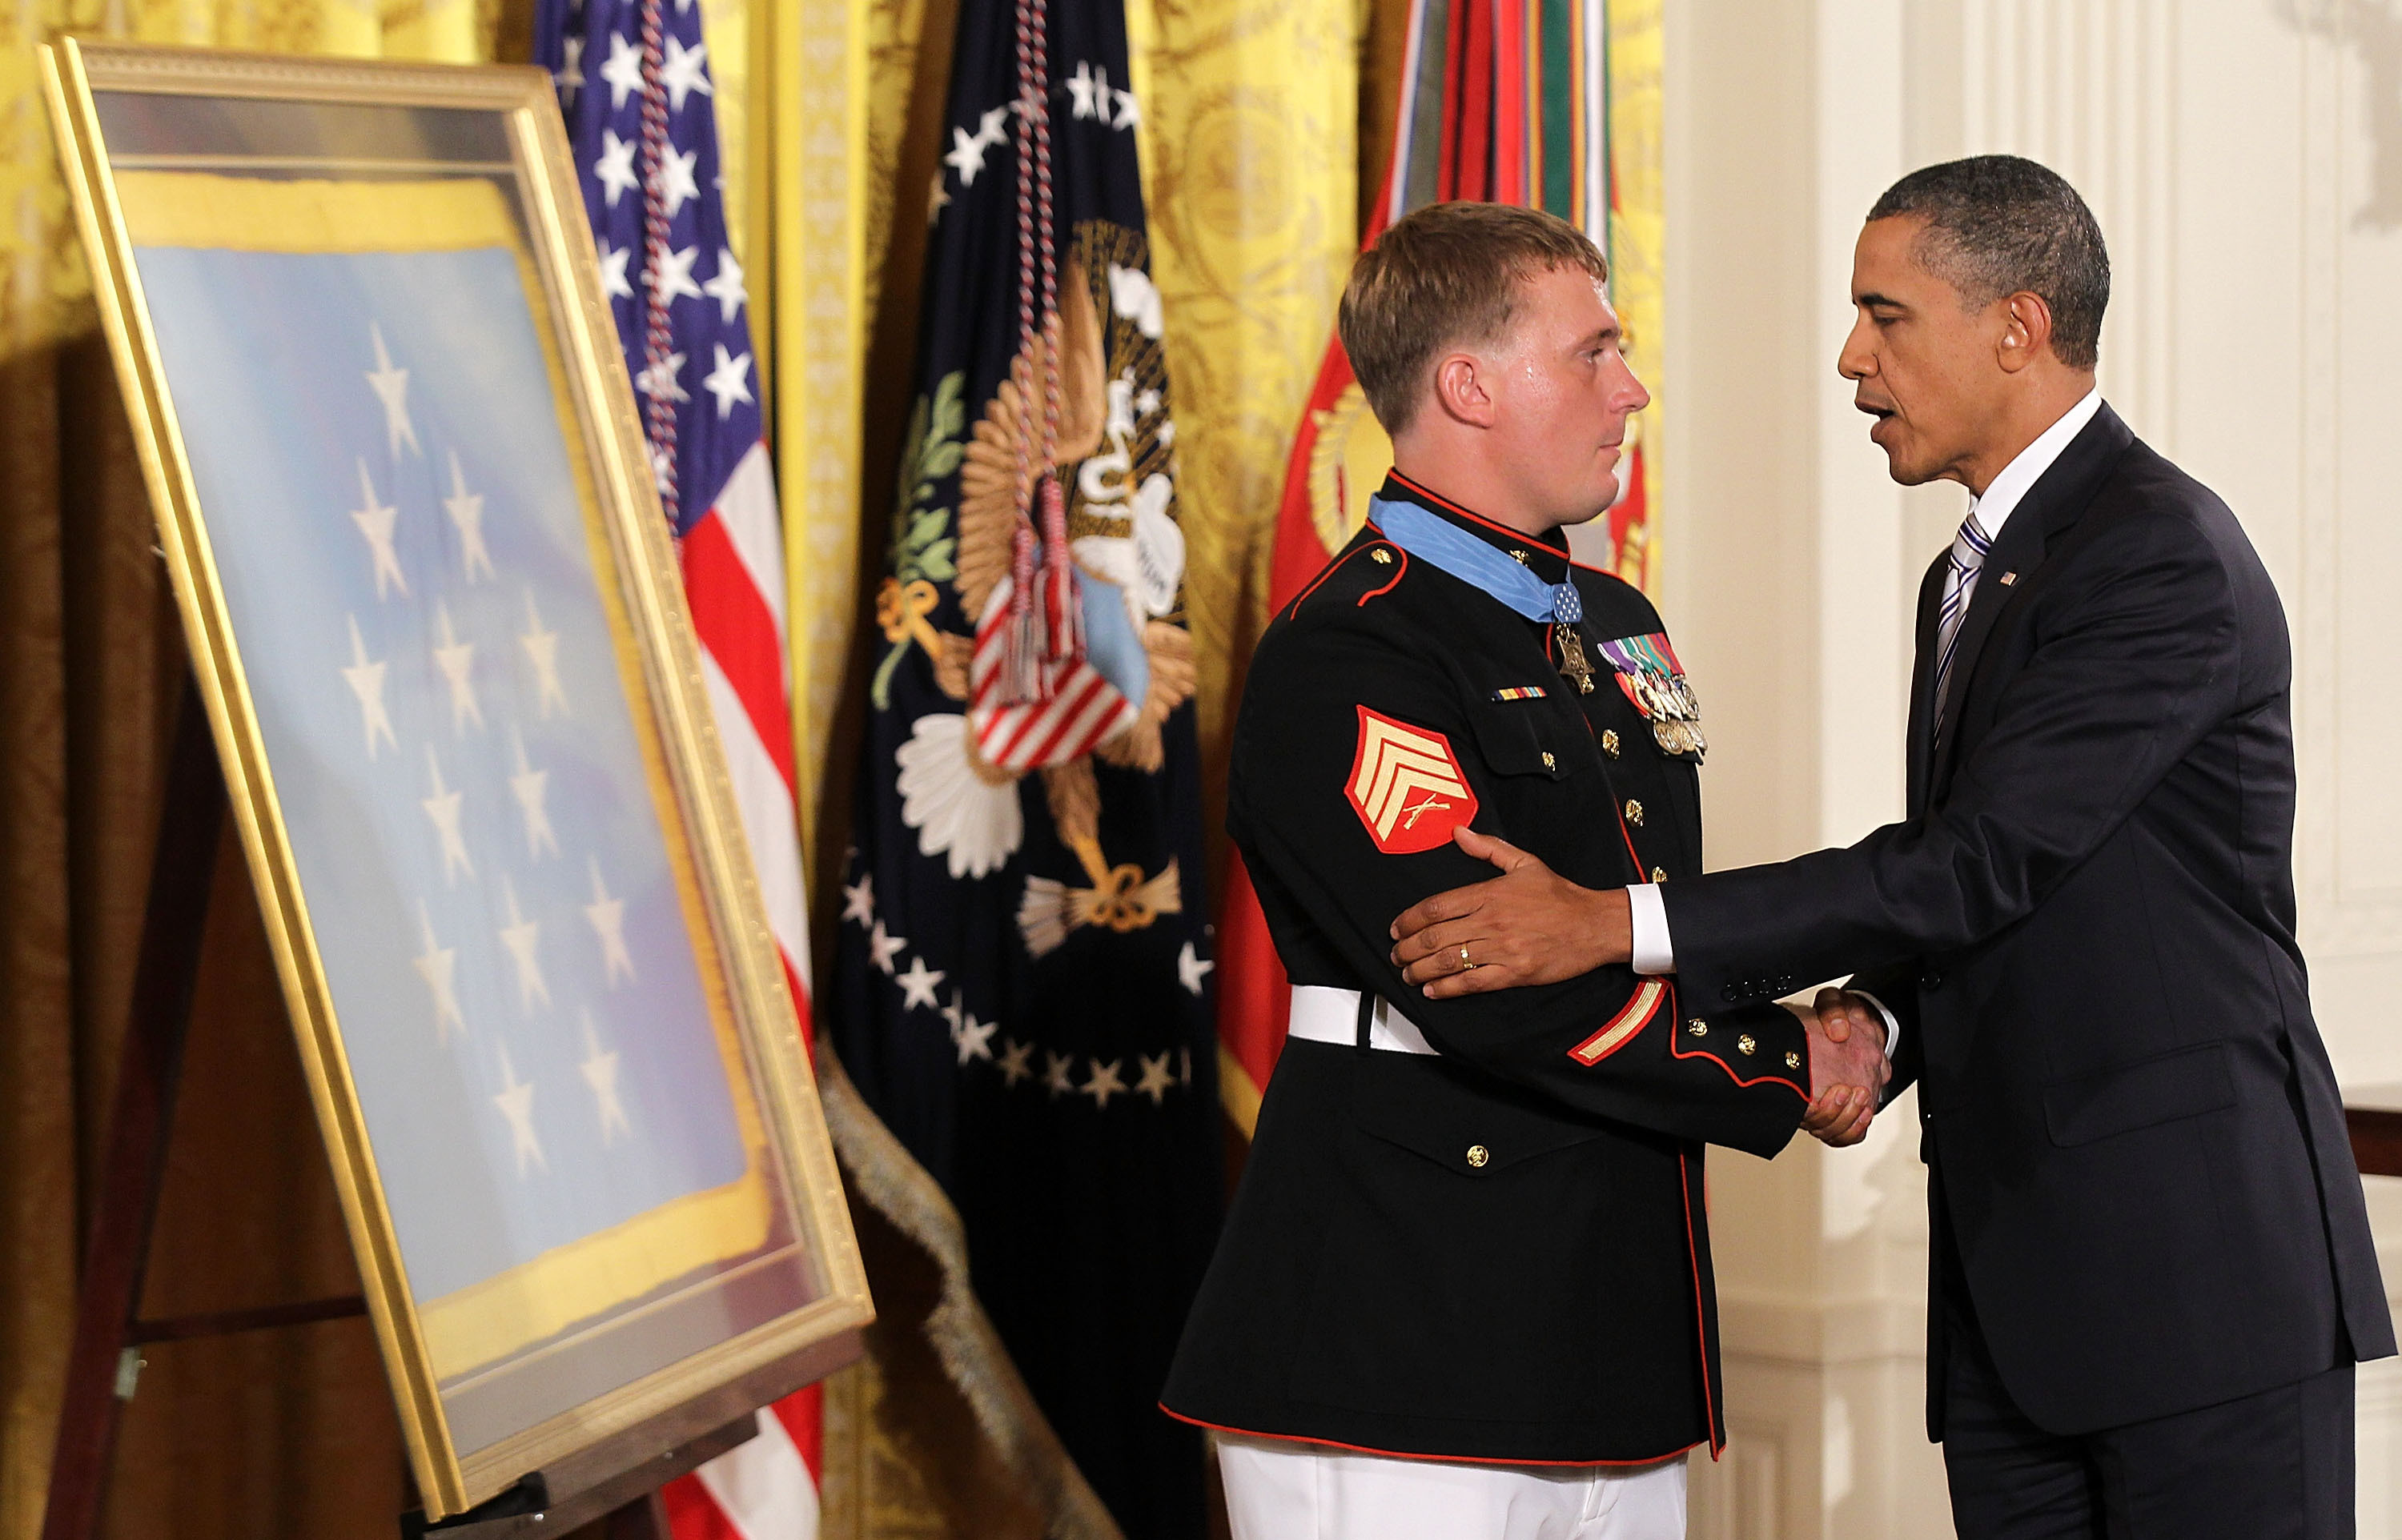 dakota meyer medal of honor